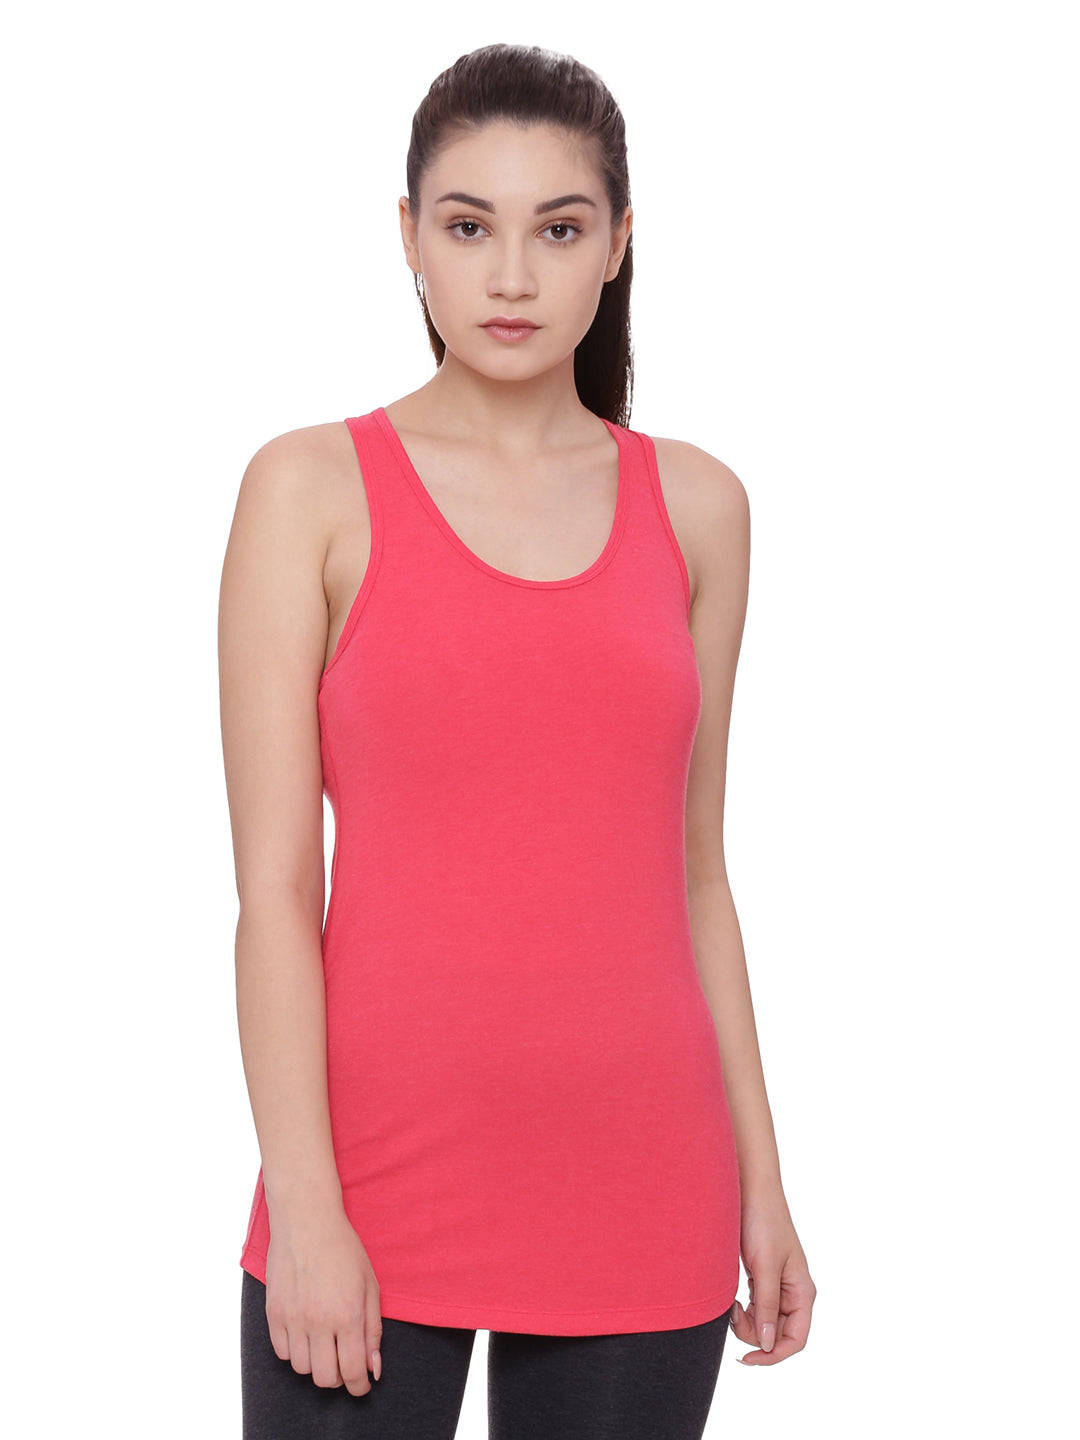 A model wearing a pink women's organic cotton tank top